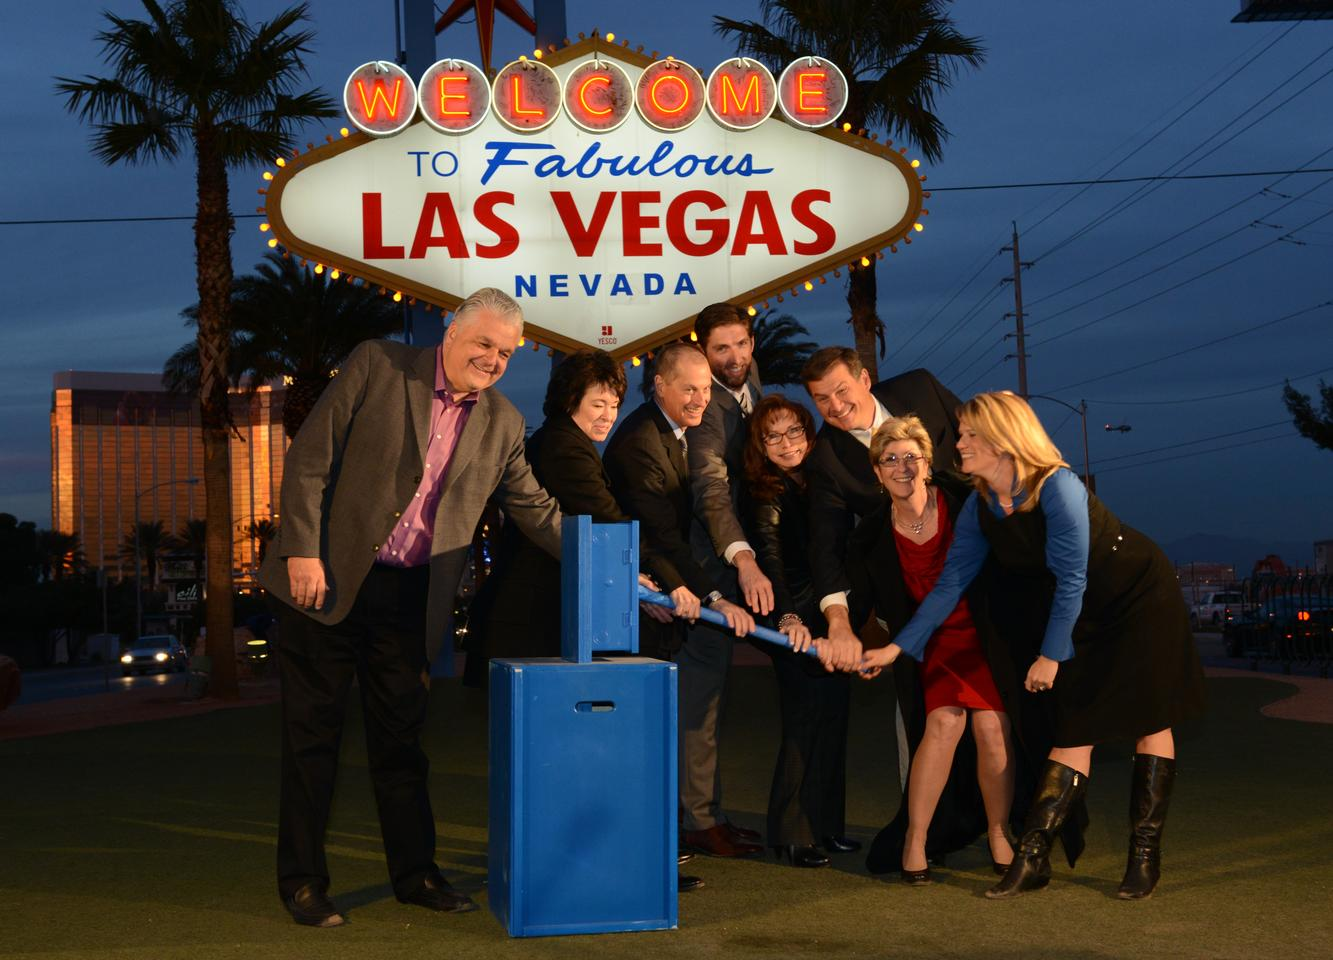 Local luminaries fire up the now solar-powered Las Vegas sign